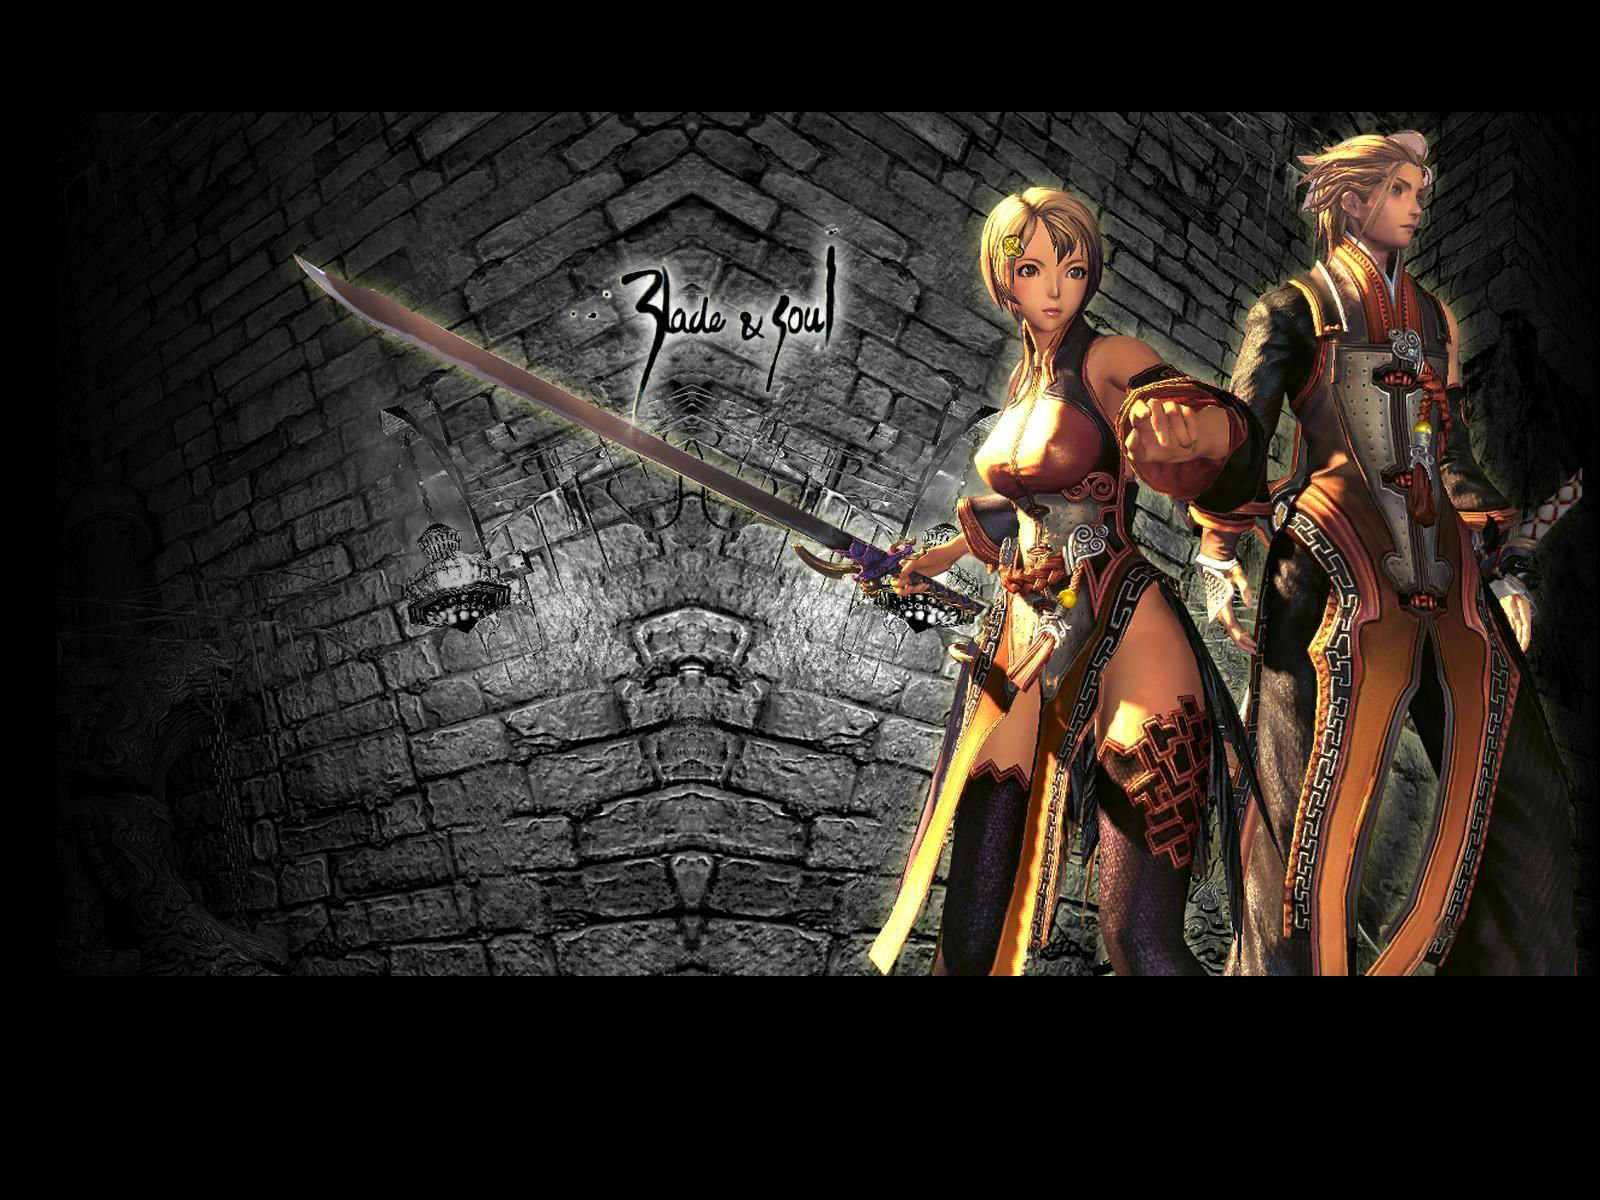 Best Blade And Soul Wallpaper Id130015 For High Resolution